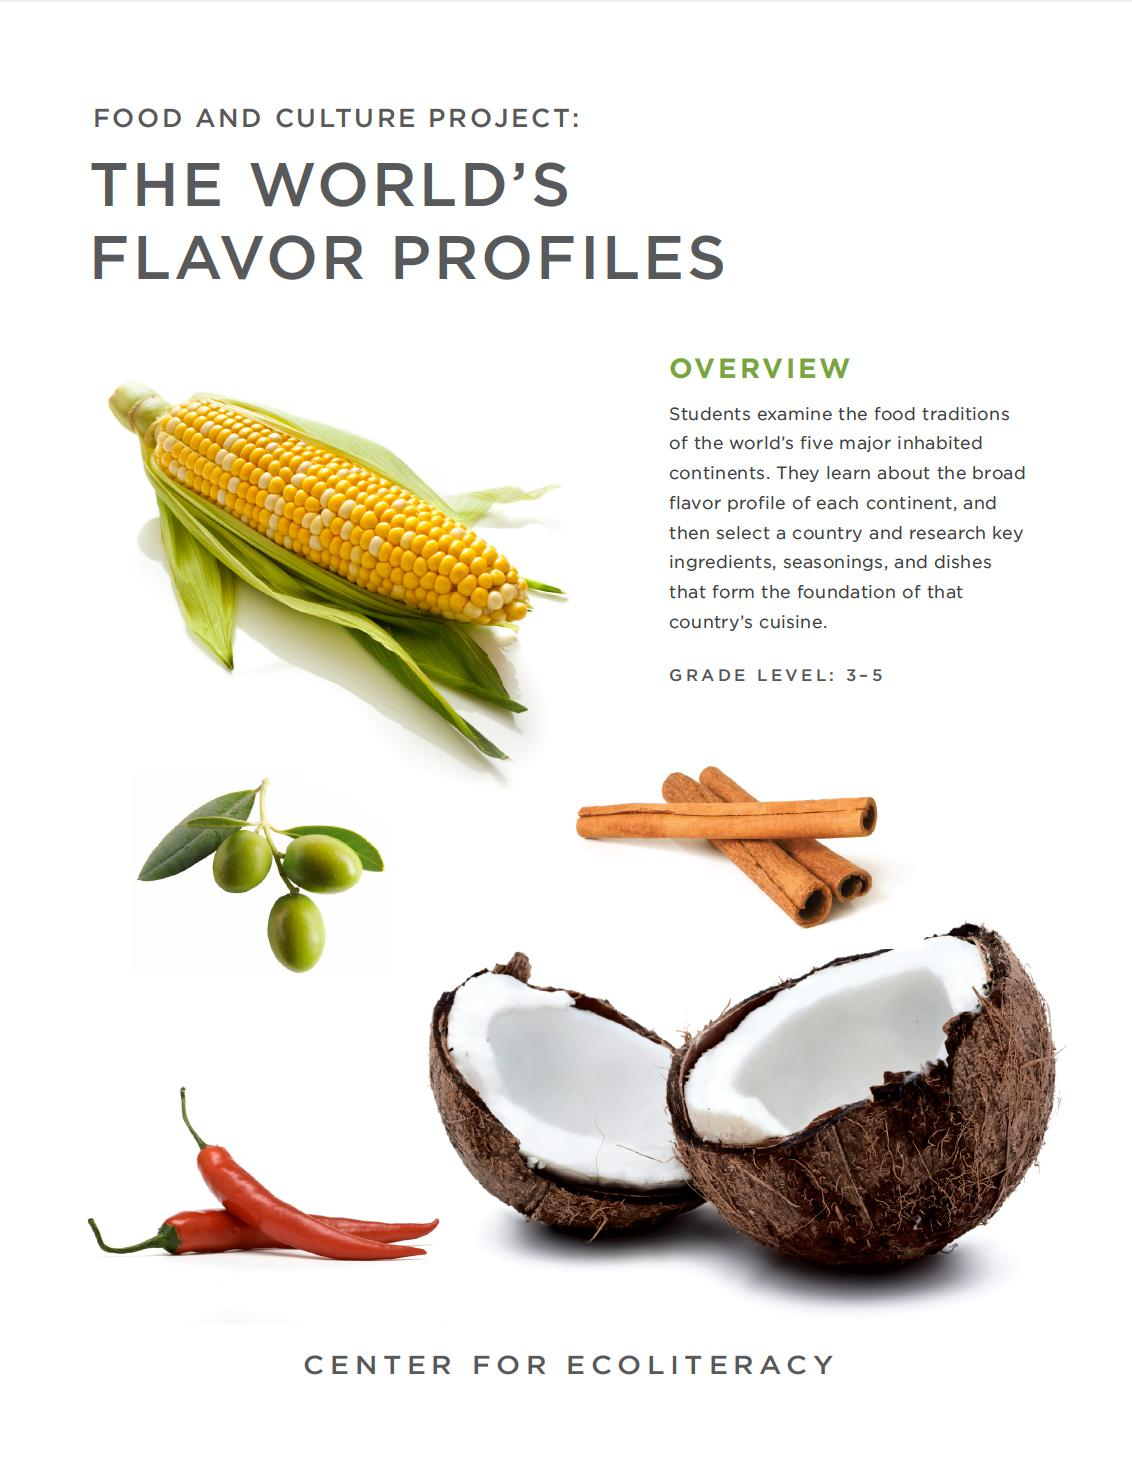 Food and Culture Project: The World's Flavor Profiles Lesson cover